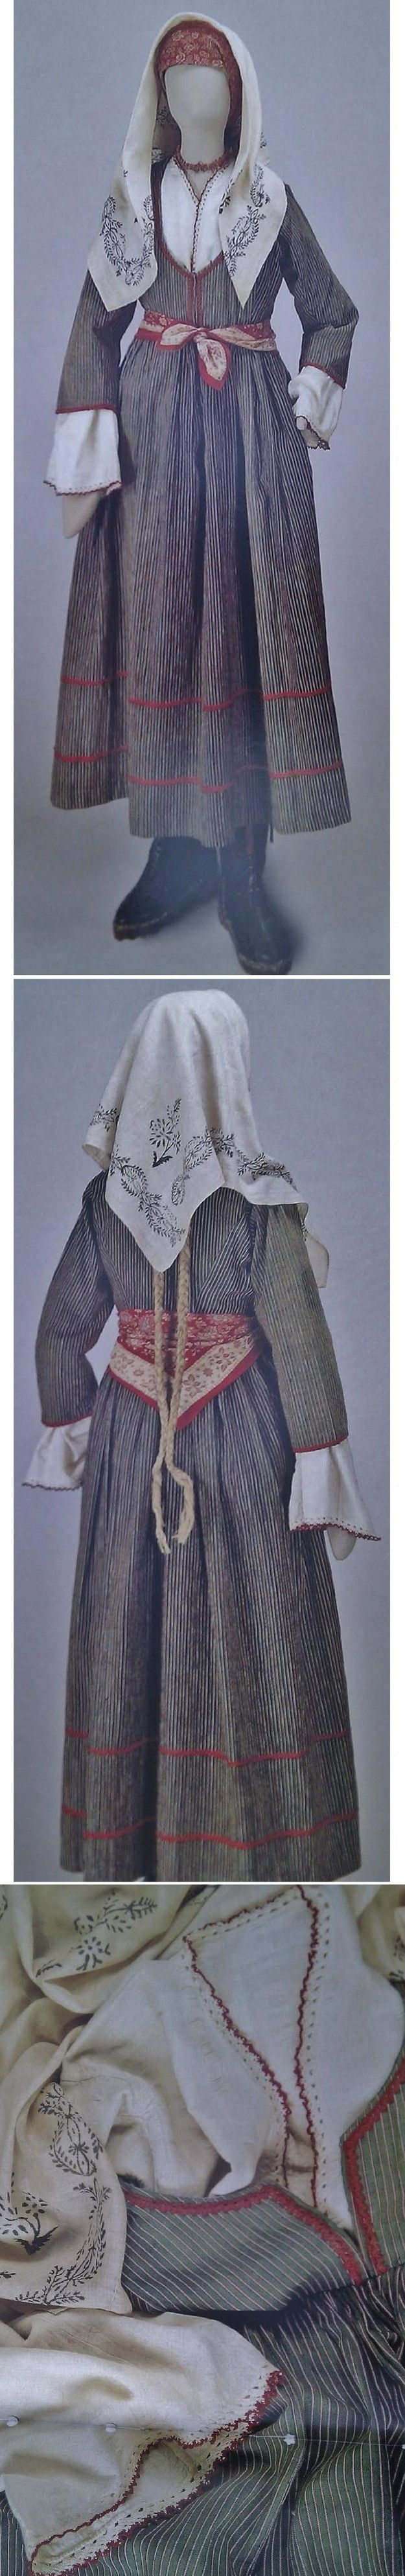 Traditional poor people's clothing ('with foustani') from Cyprus. Greek, clothing style: early 20th century.